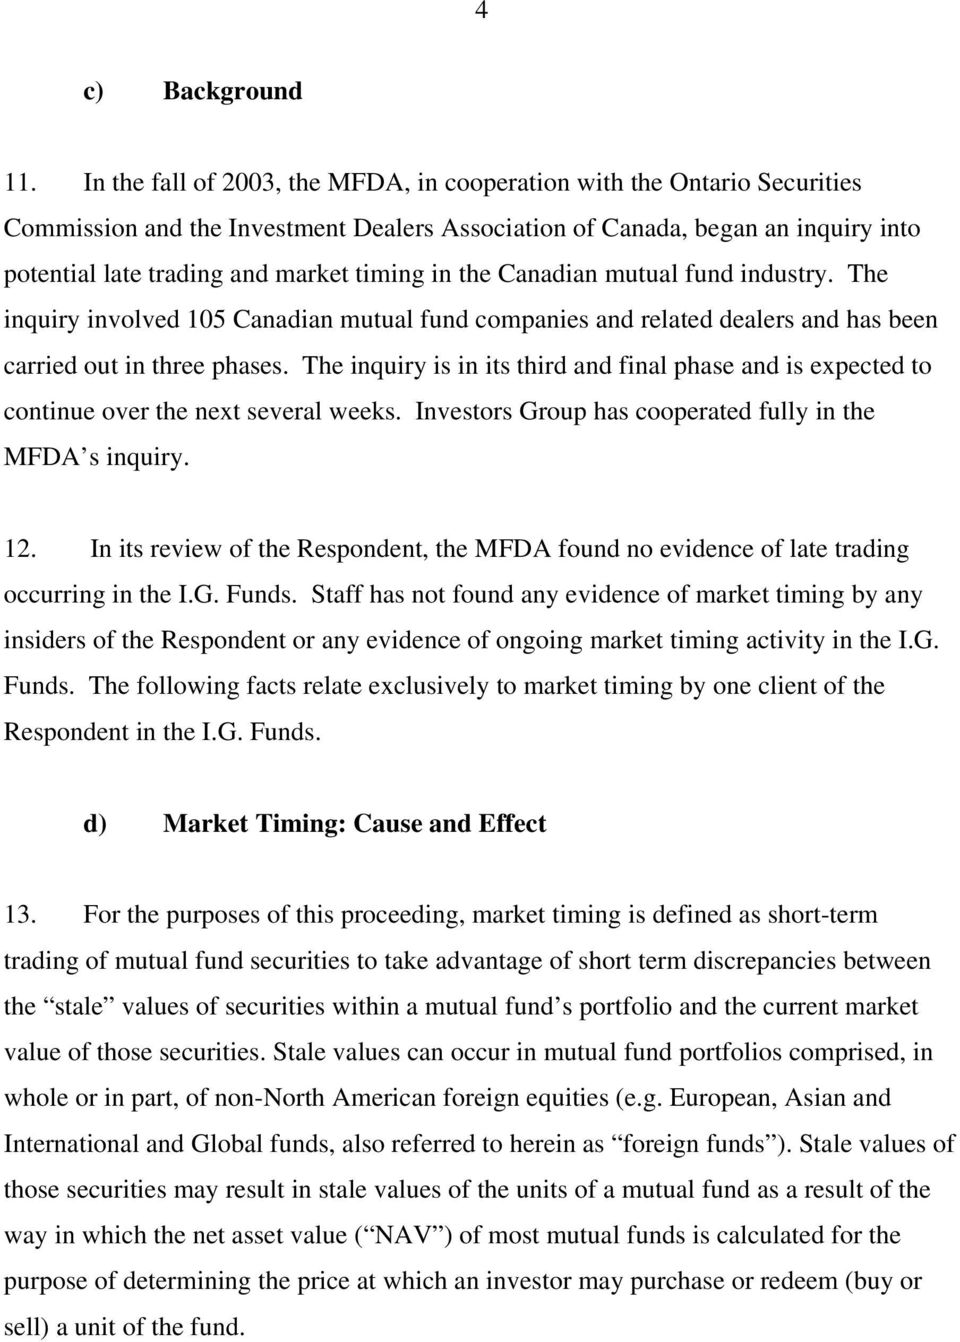 in the Canadian mutual fund industry. The inquiry involved 105 Canadian mutual fund companies and related dealers and has been carried out in three phases.